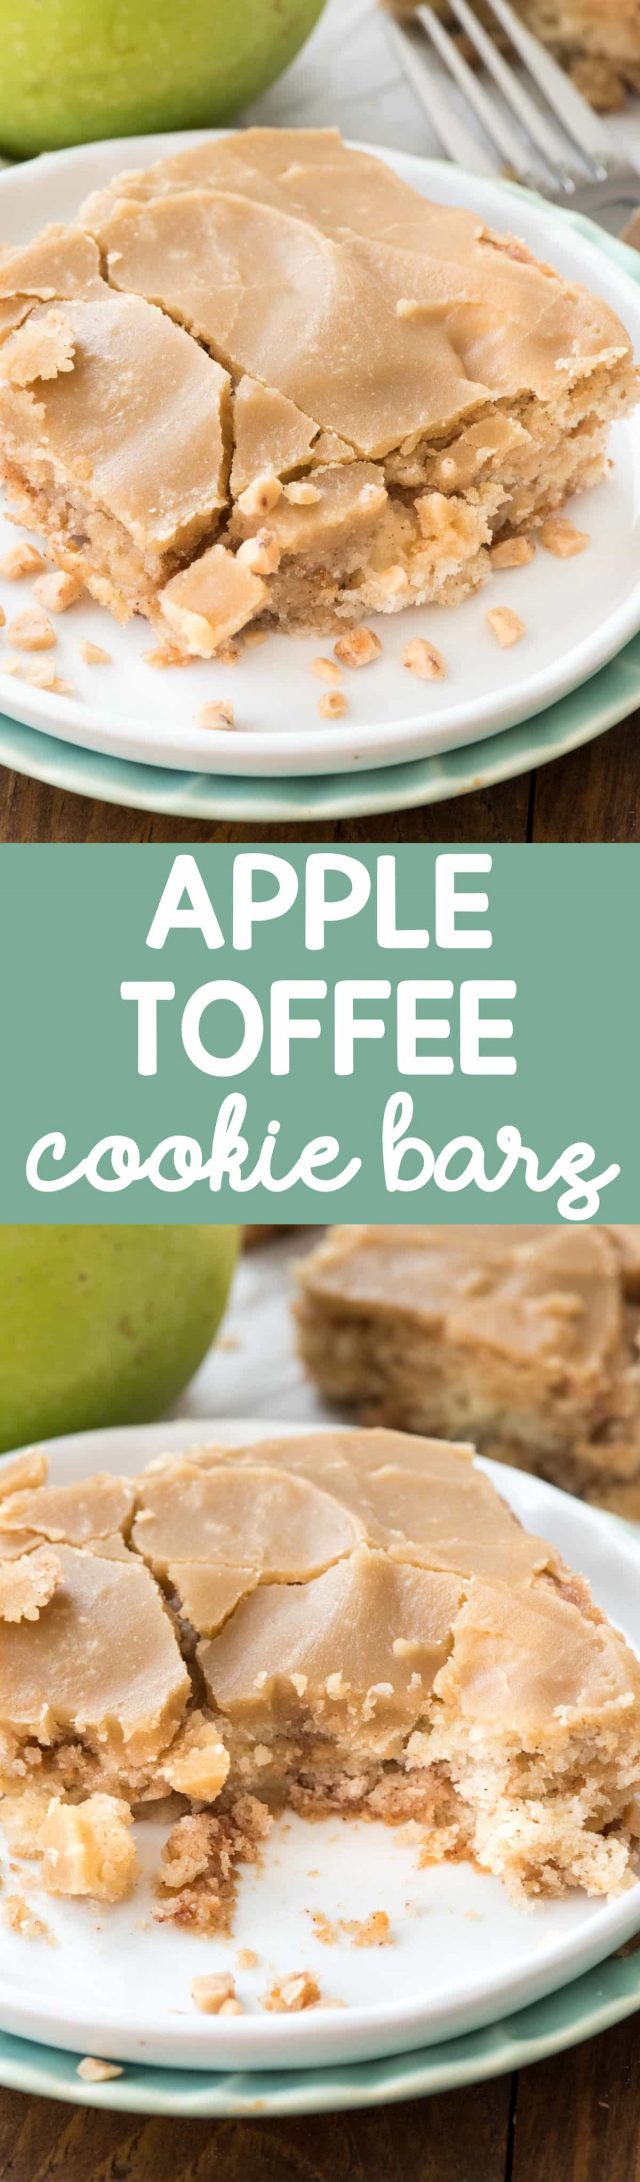 Apple Toffee Bars on a white plate with cracked caramel frosting and fork behind collage with words